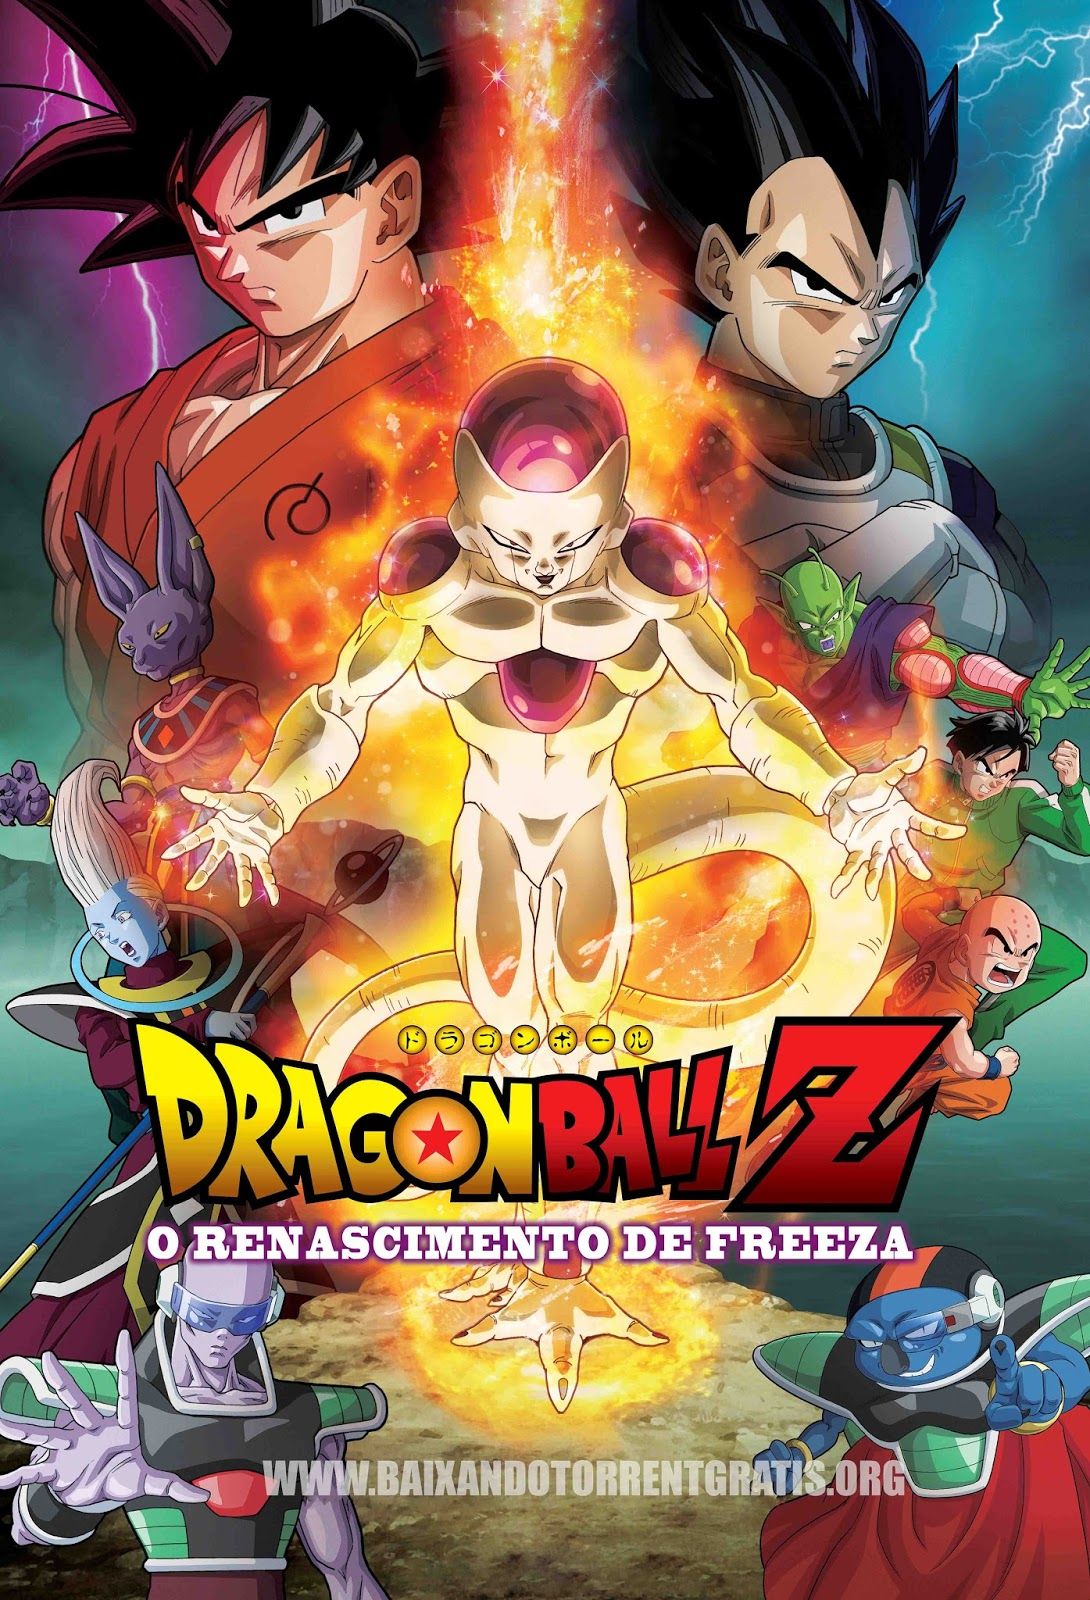 Dragon Ball Z: O Renascimento de Freeza Torrent - BluRay 720p/1080p Dual Áudio